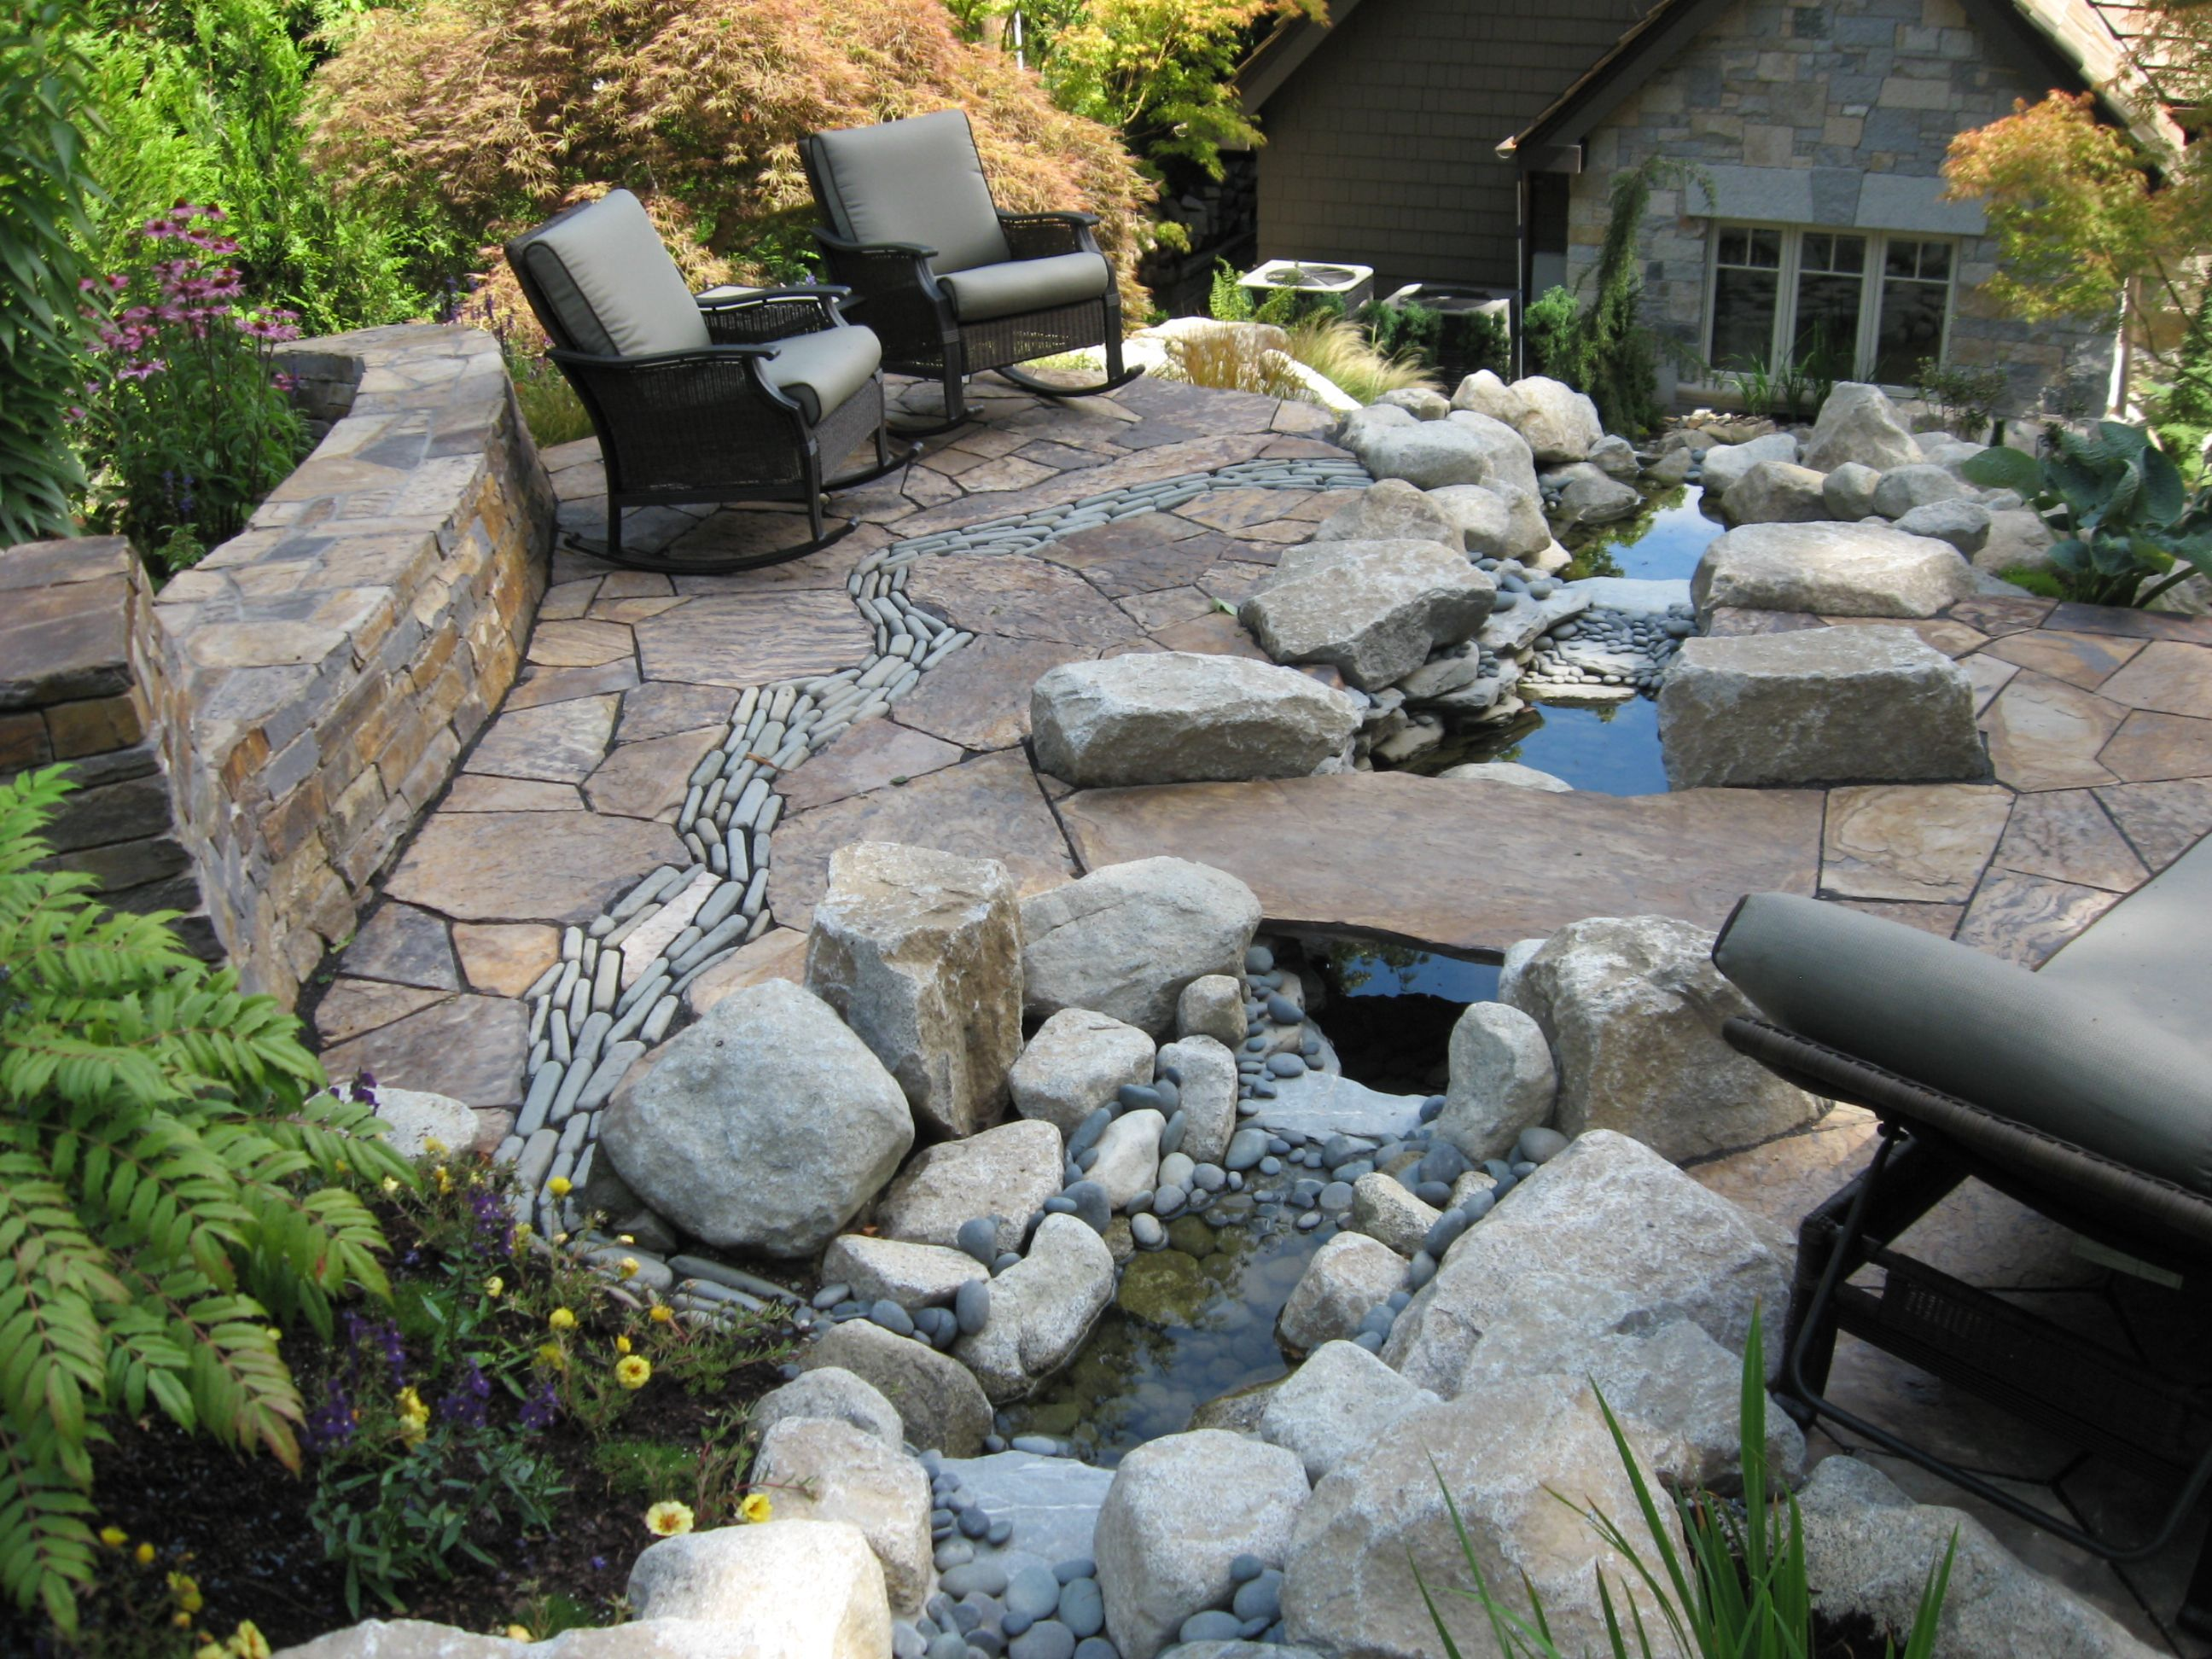 Stone Patio Design Ideas stone patio design ideas in brick paver patio Stone Patio Ideas Backyard 20 Creative Patiooutdoor Bar Ideas You Must Try At Your Backyard Youll